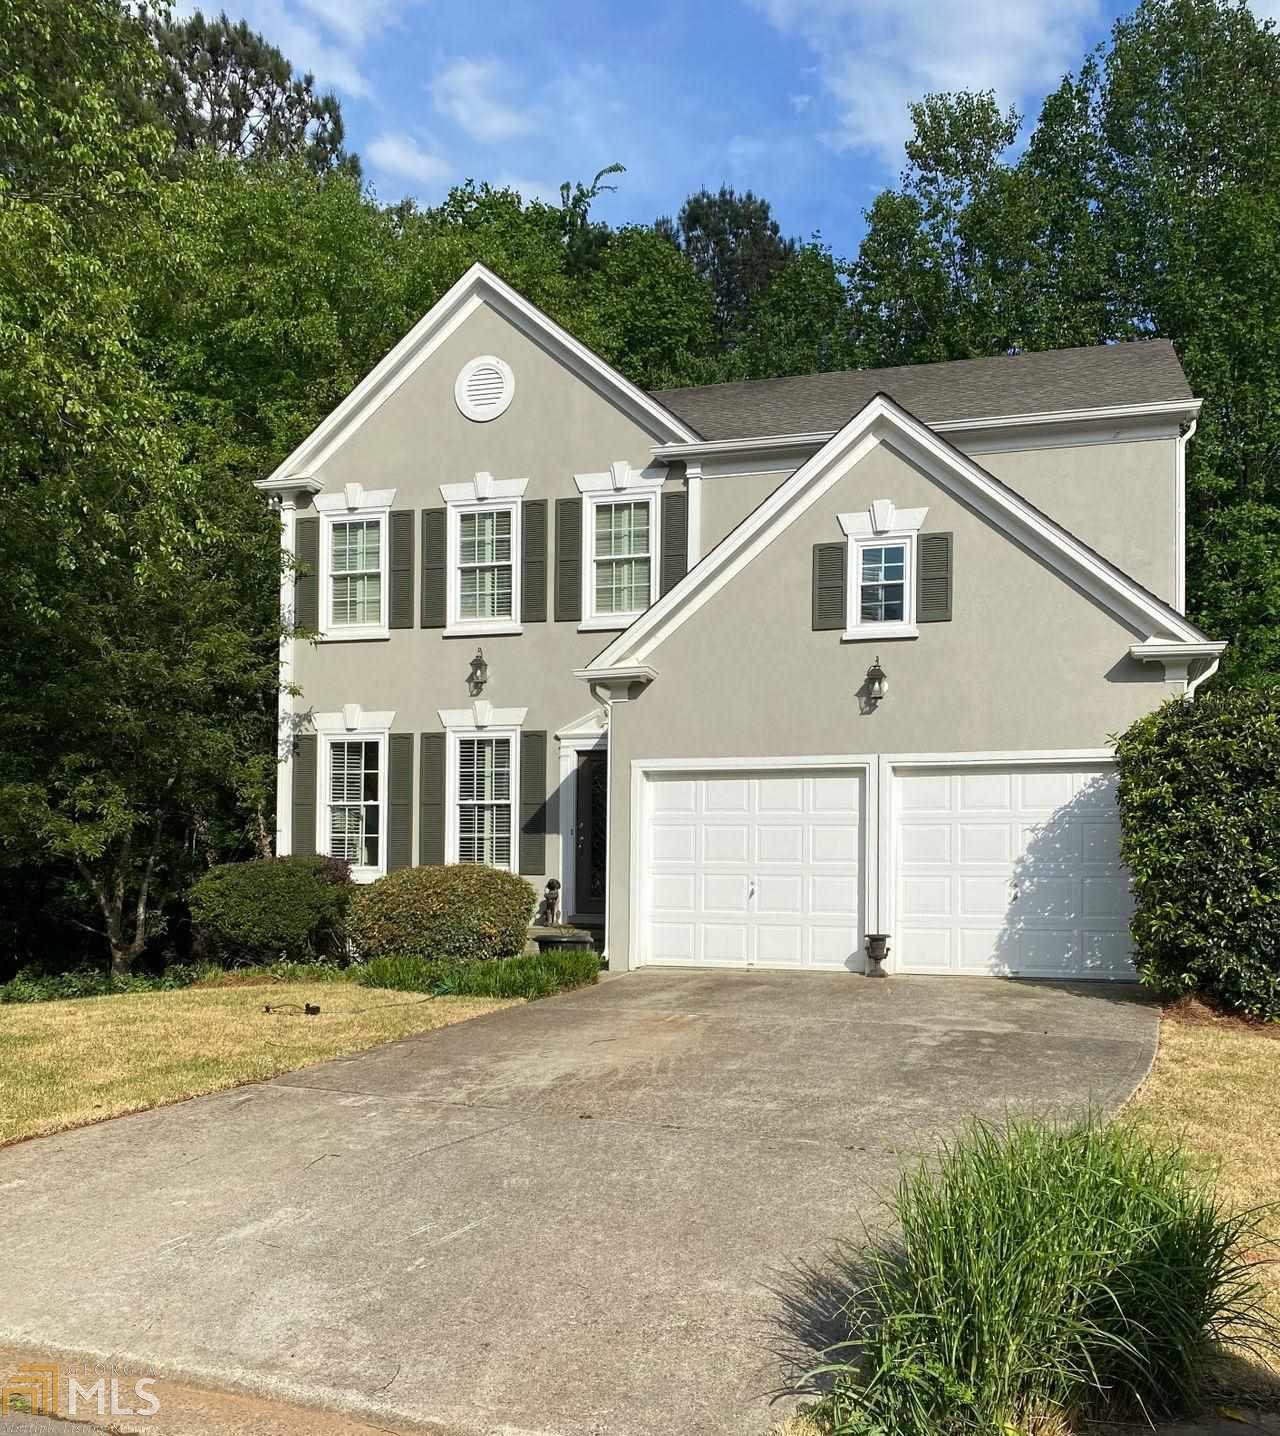 Image for property 4004 Maple Ridge Ln, Acworth, GA 30101